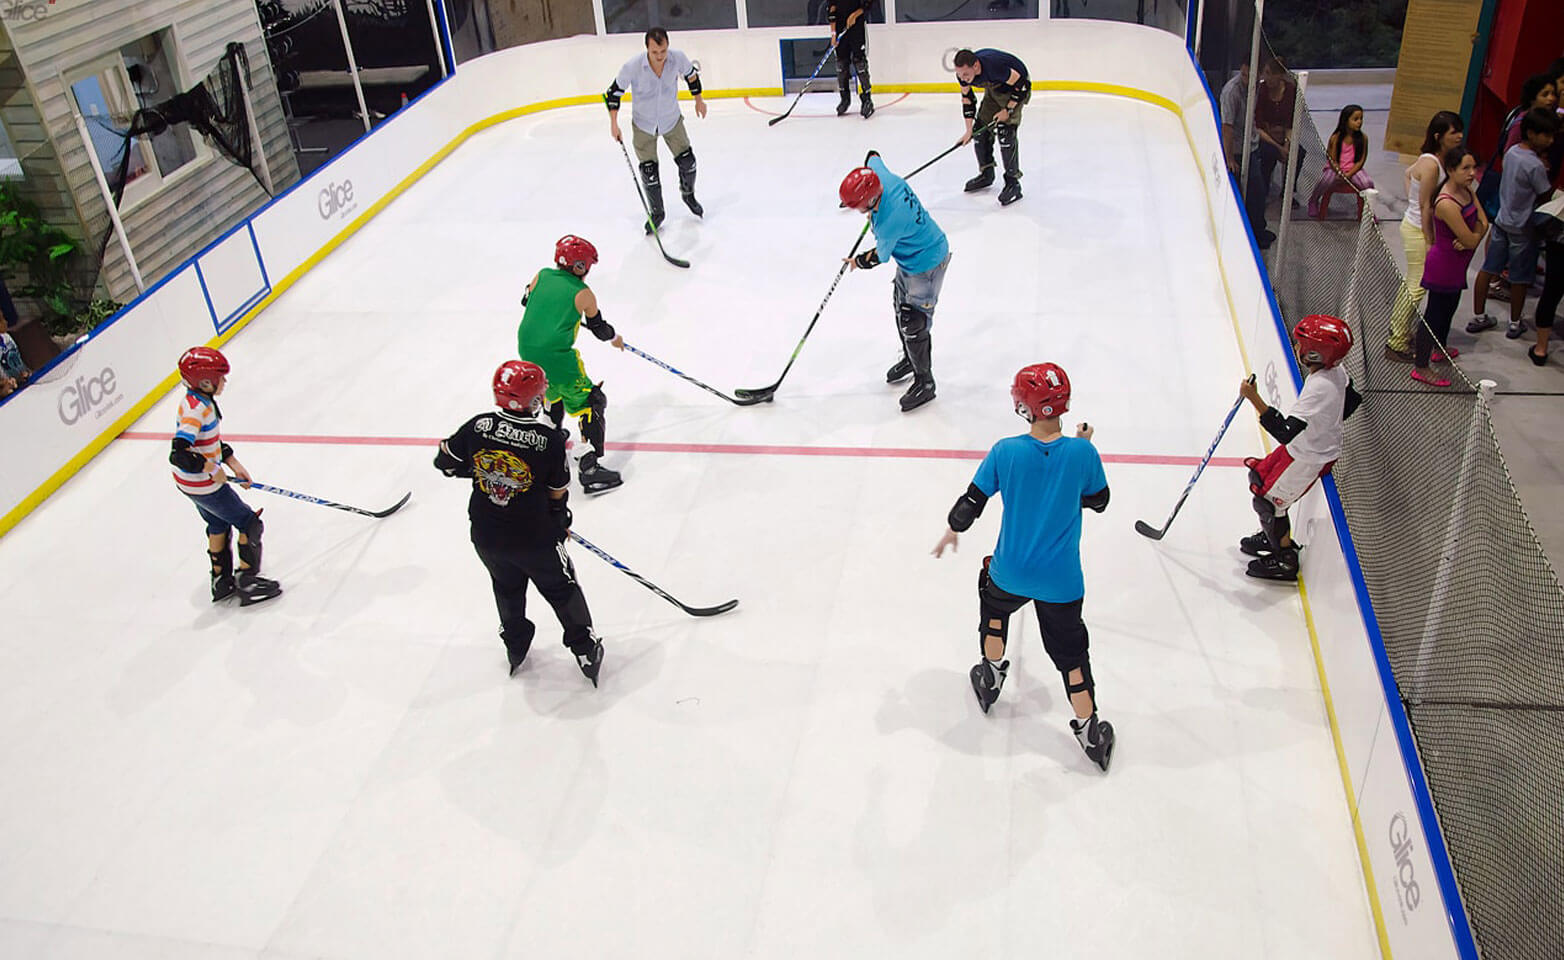 Bird's eye view onto synthetic ice rink mini arena